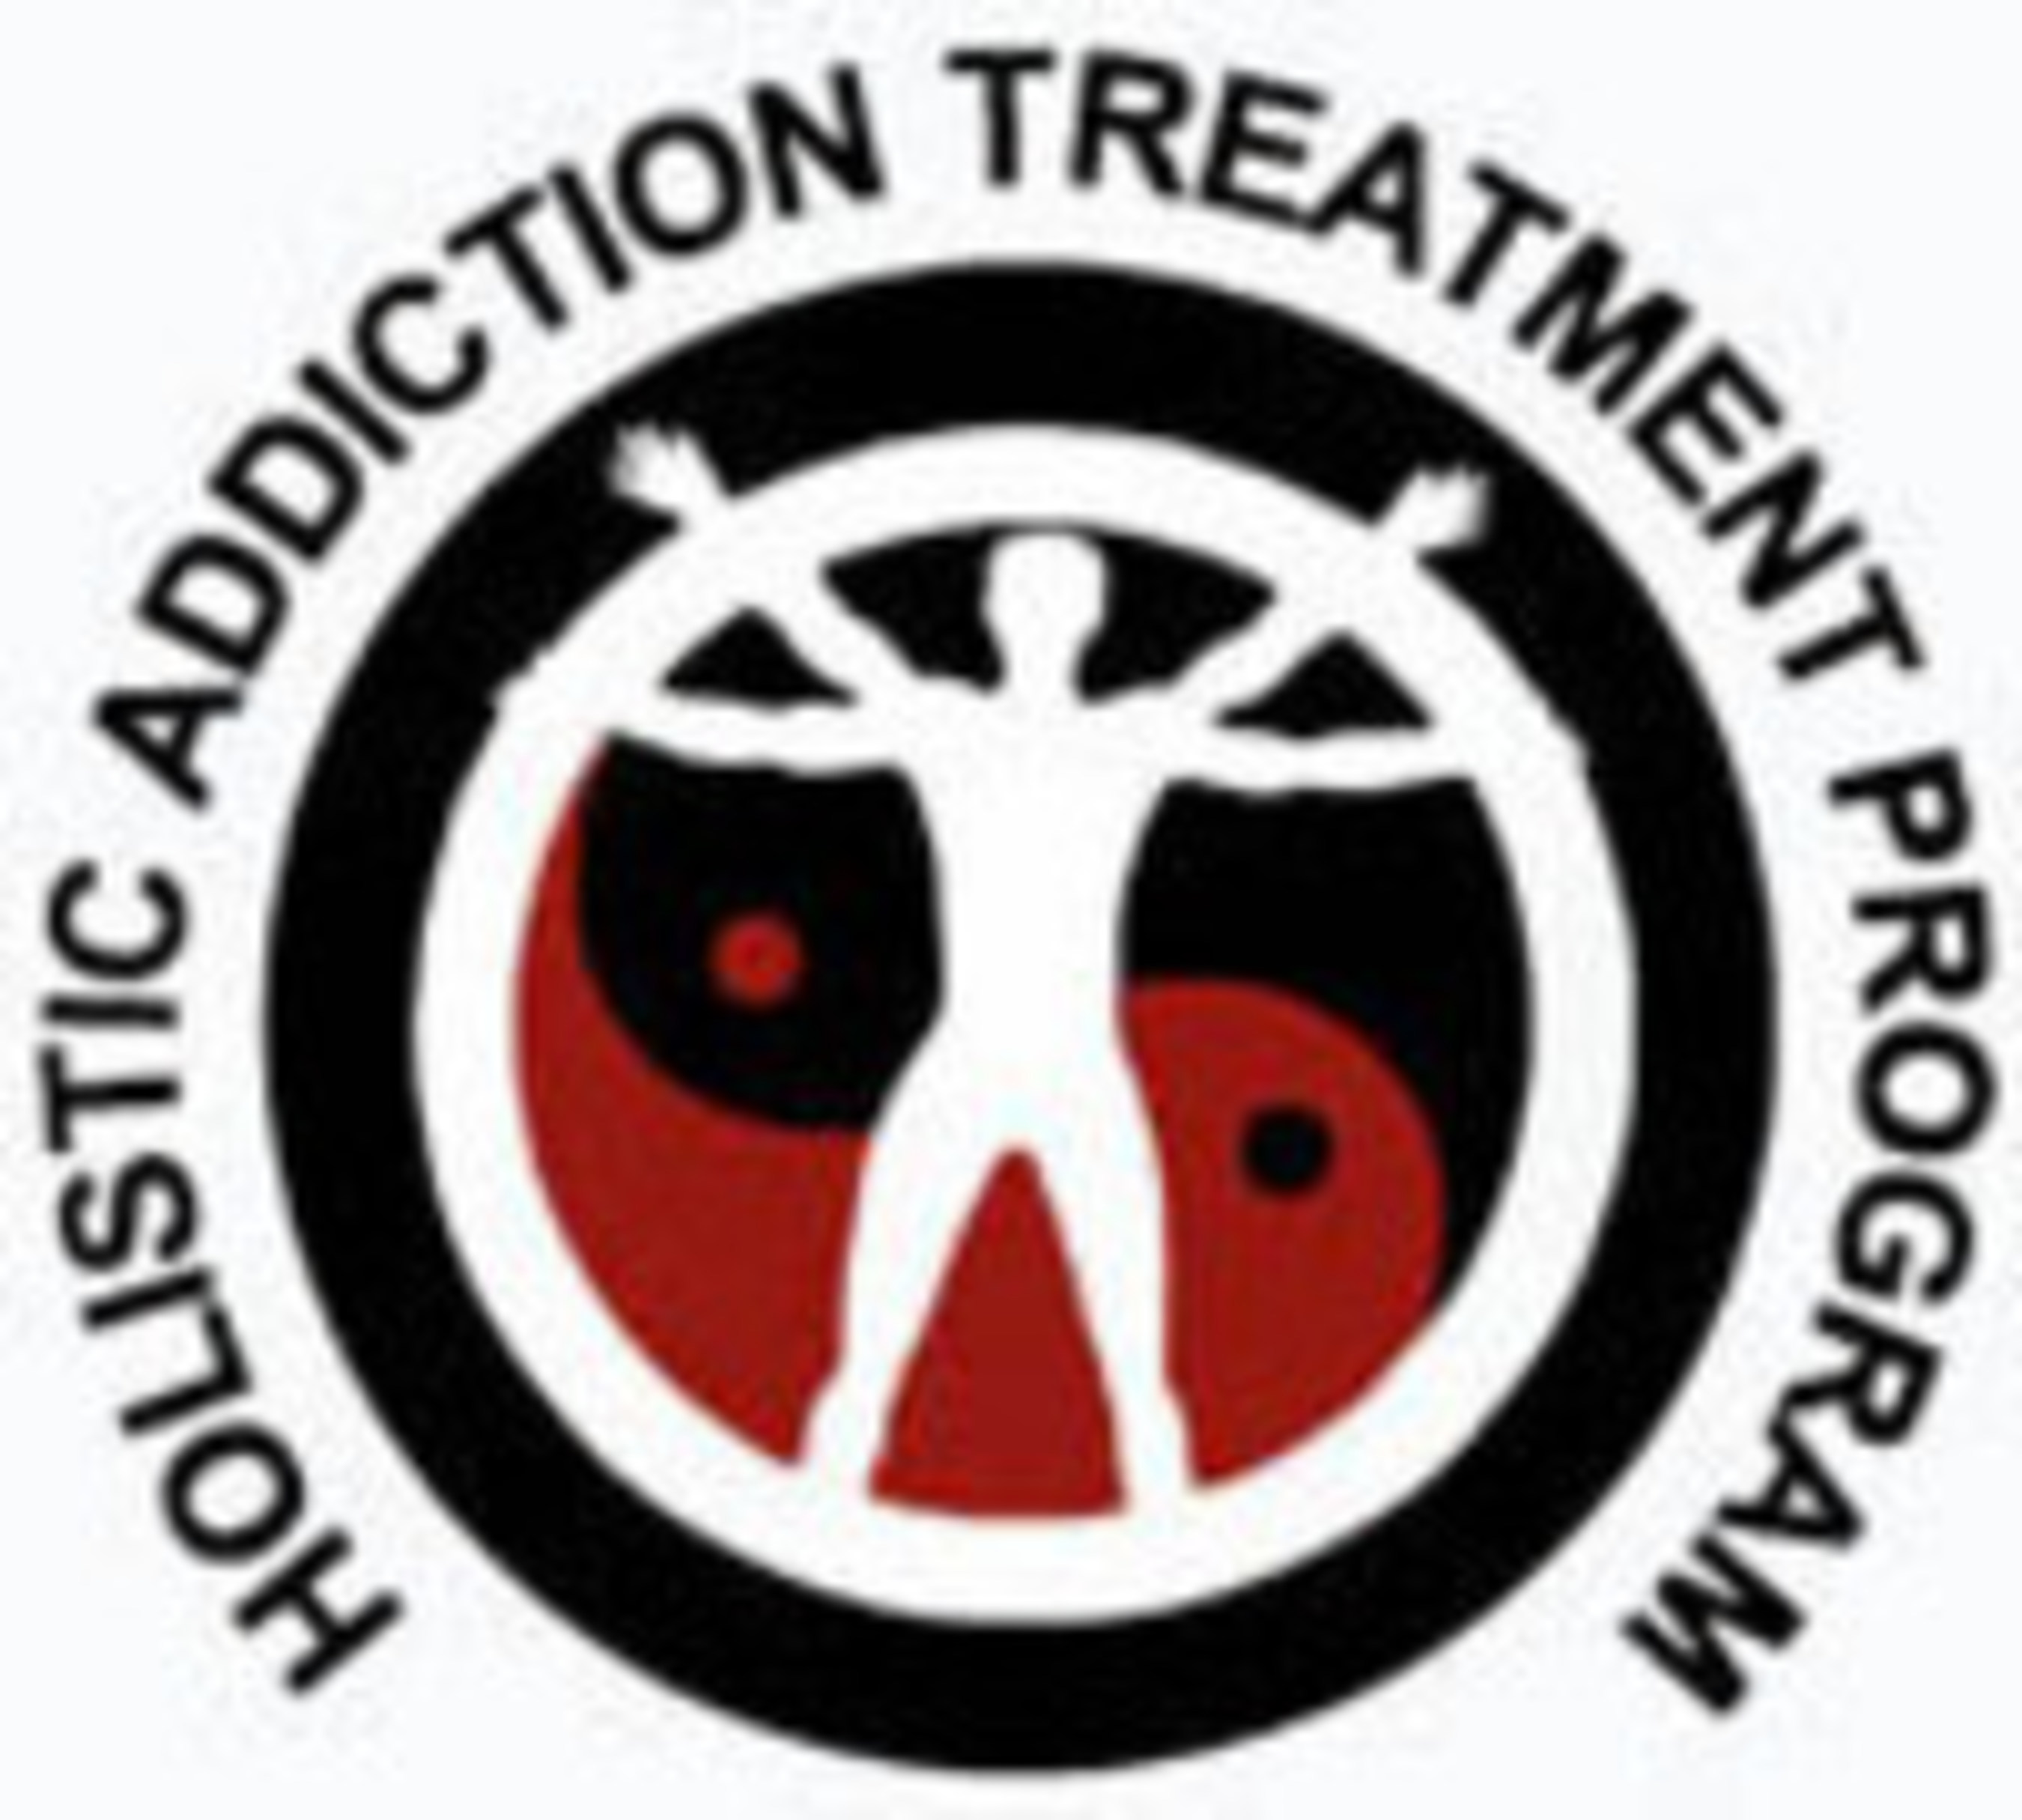 G&G Holistic Addiction Treatment Program Focuses on Mind-Body-Spirit Wellness and Recovery